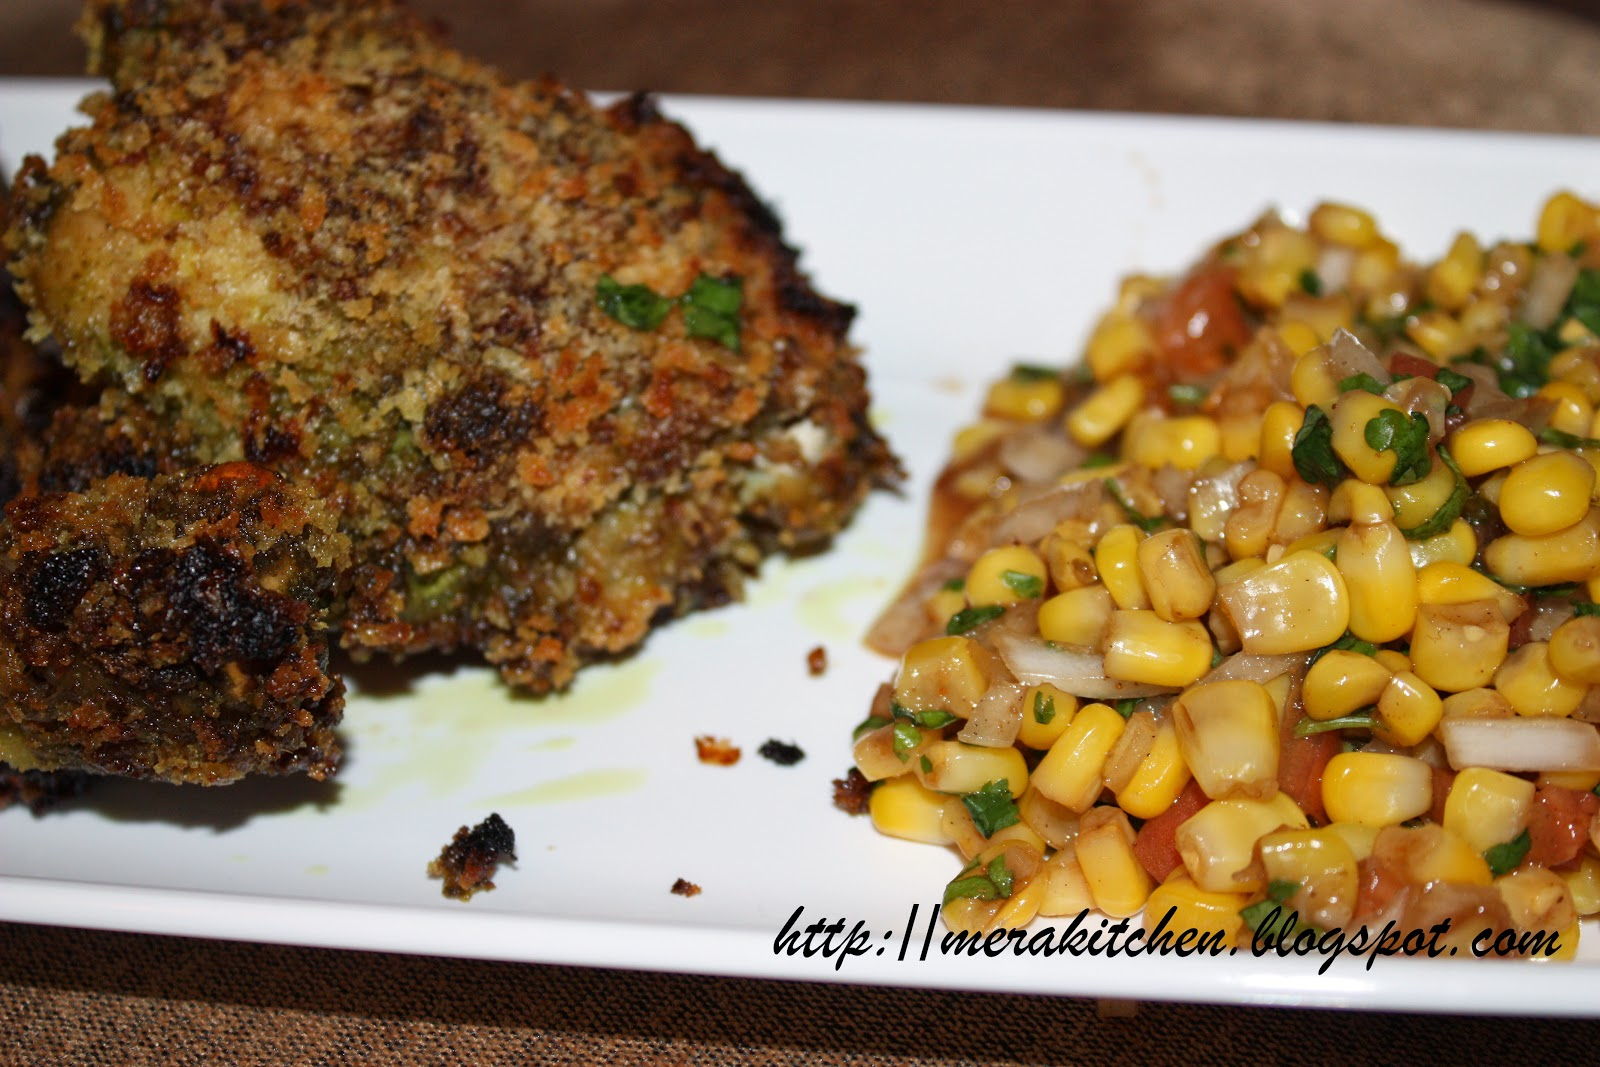 merakitchen: Oven fried herbed chicken with corn salsa/chaat